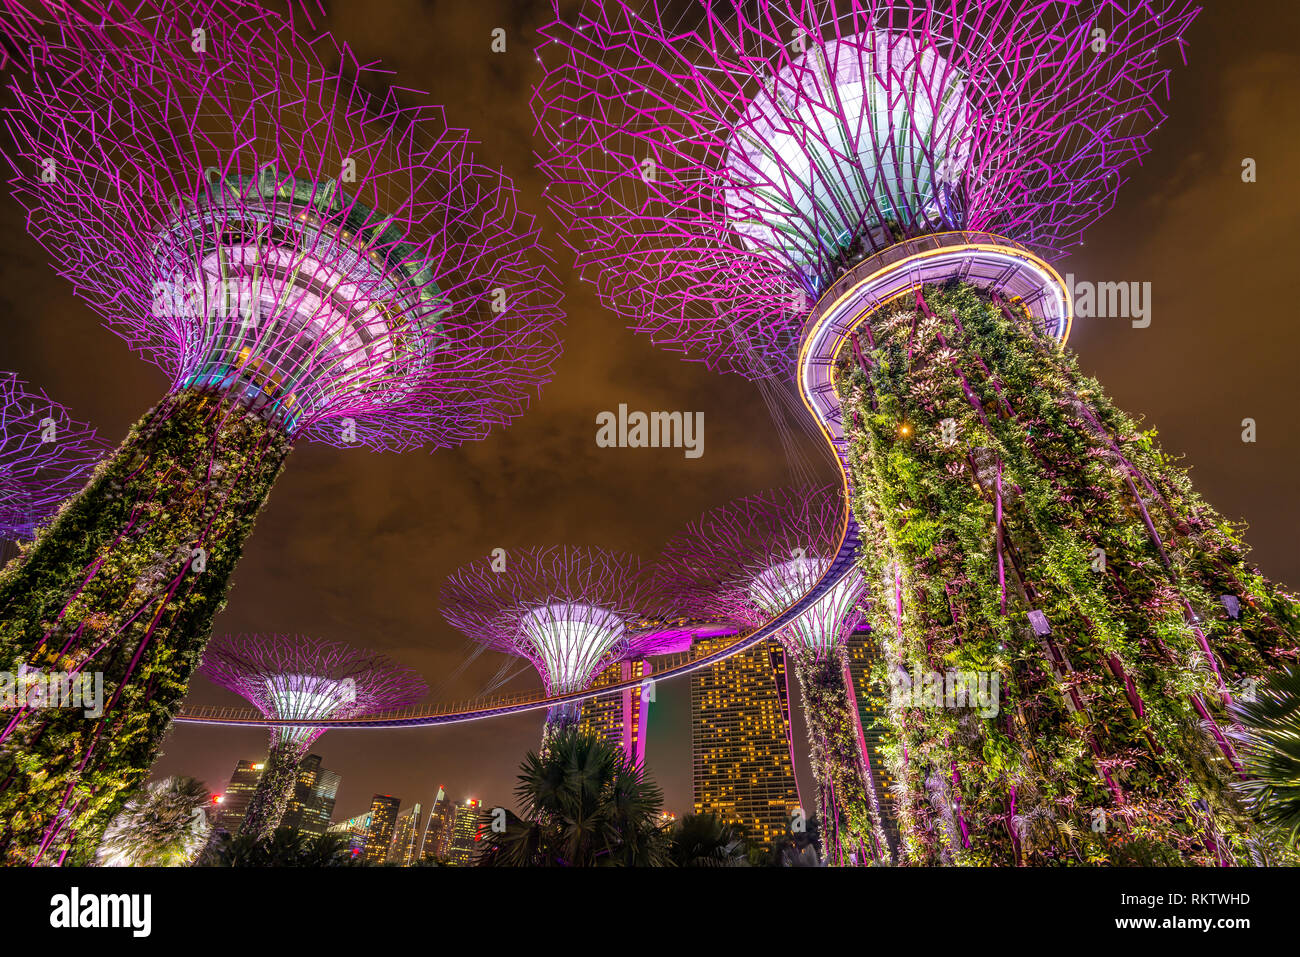 Beleuchtete Supertrees bei Nacht, Gardens by the Bay, Singapur | Illuminated Supertrees at Night, Gardens by the Bay, Singapore - Stock Image